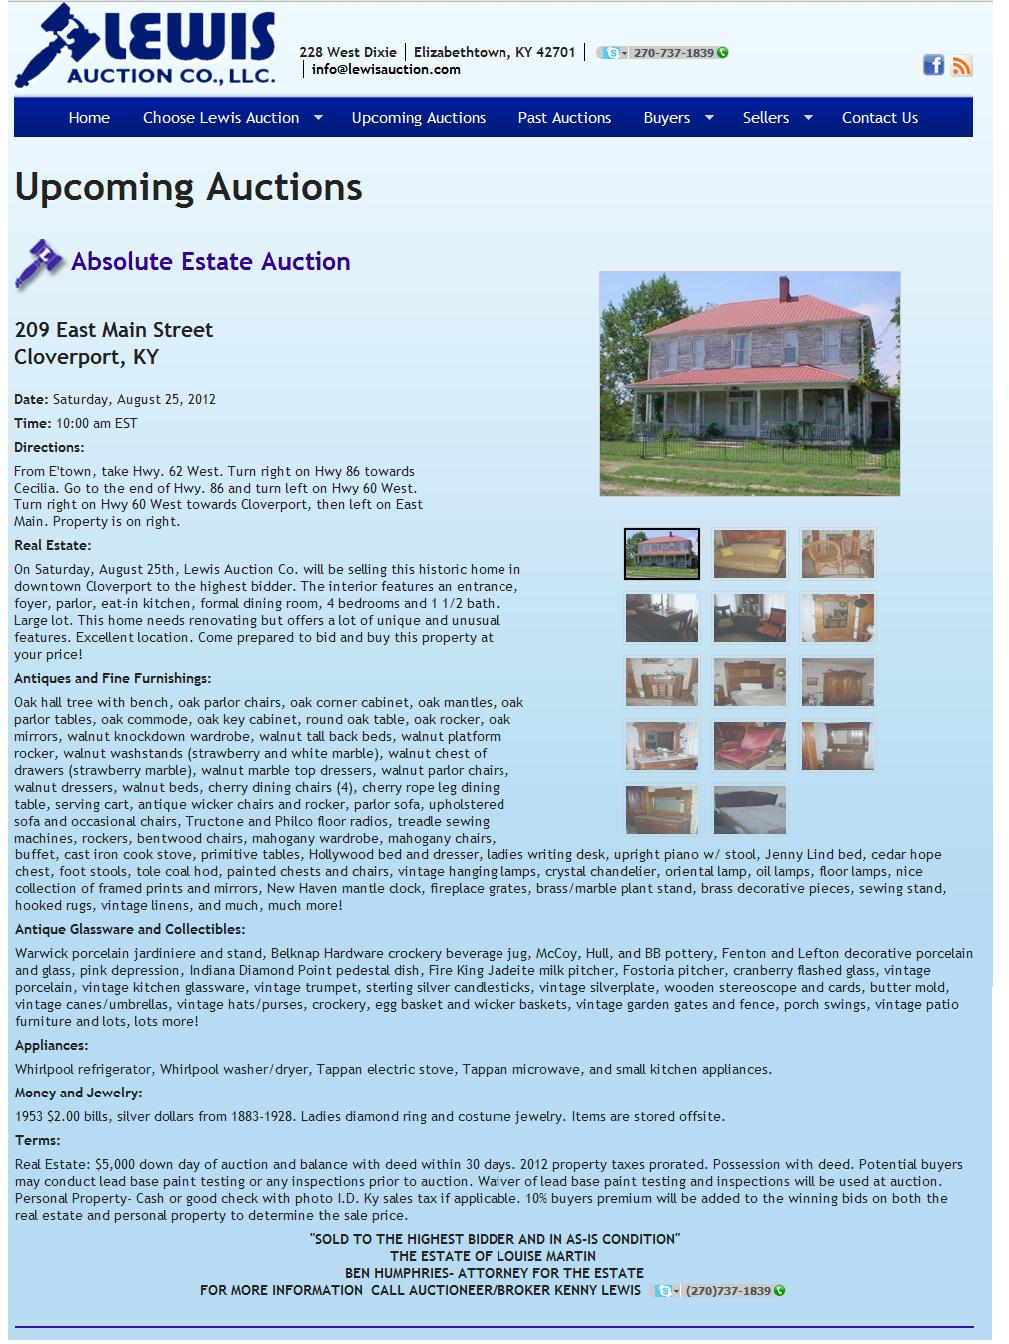 Cloverport Auction 25 Aug Probably JM WHITE house